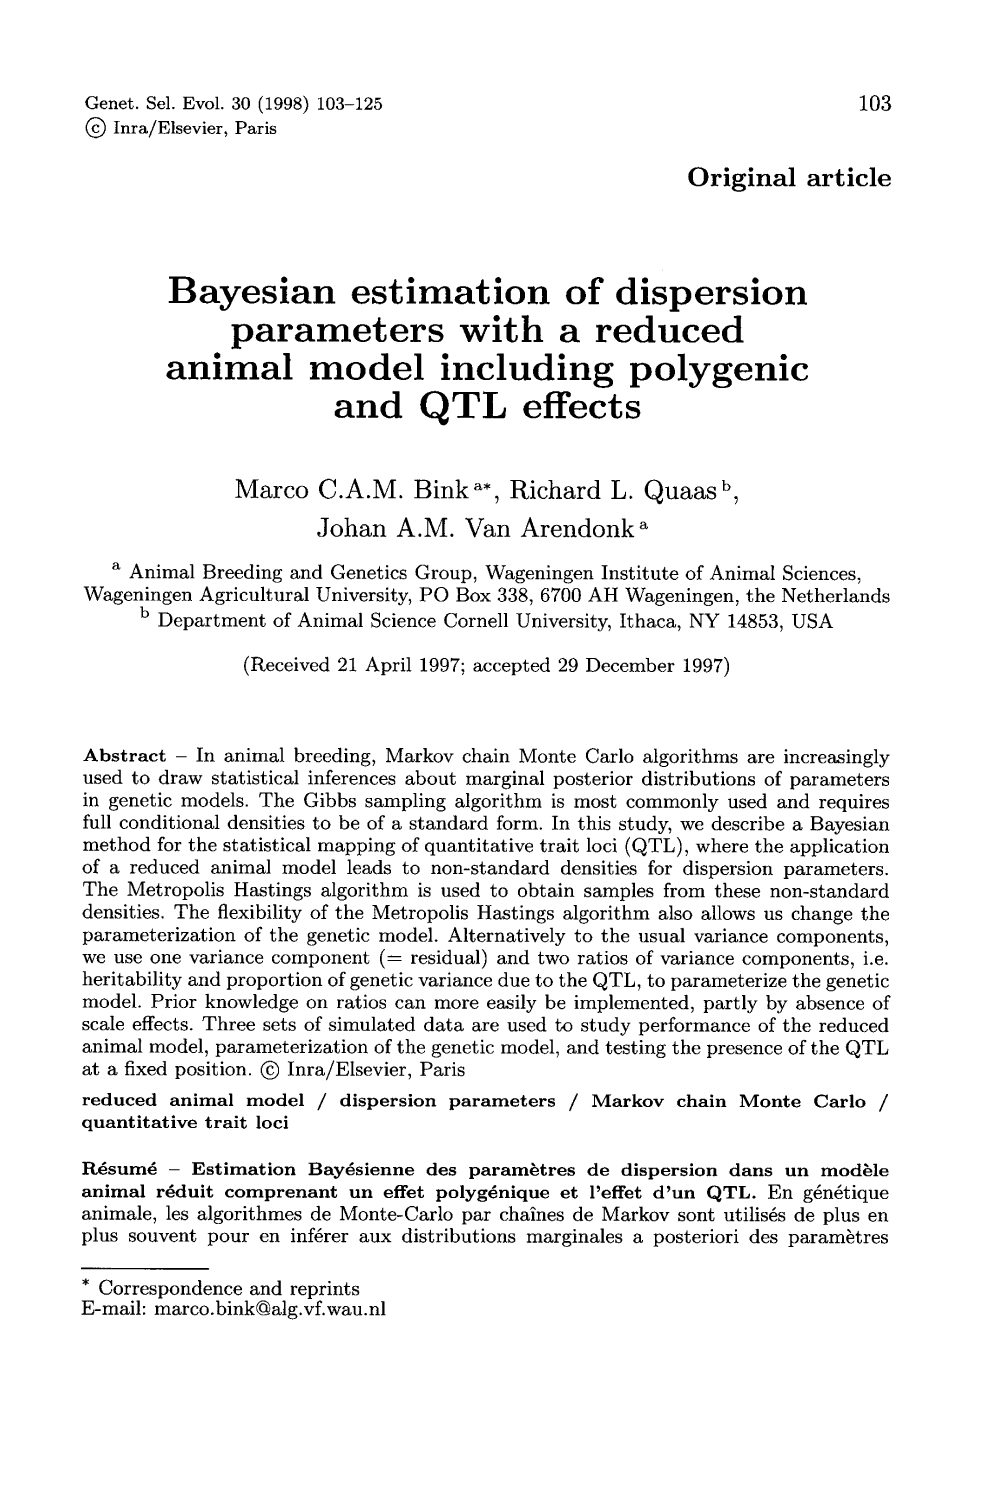 Bayesian estimation of dispersion parameters with a reduced animal